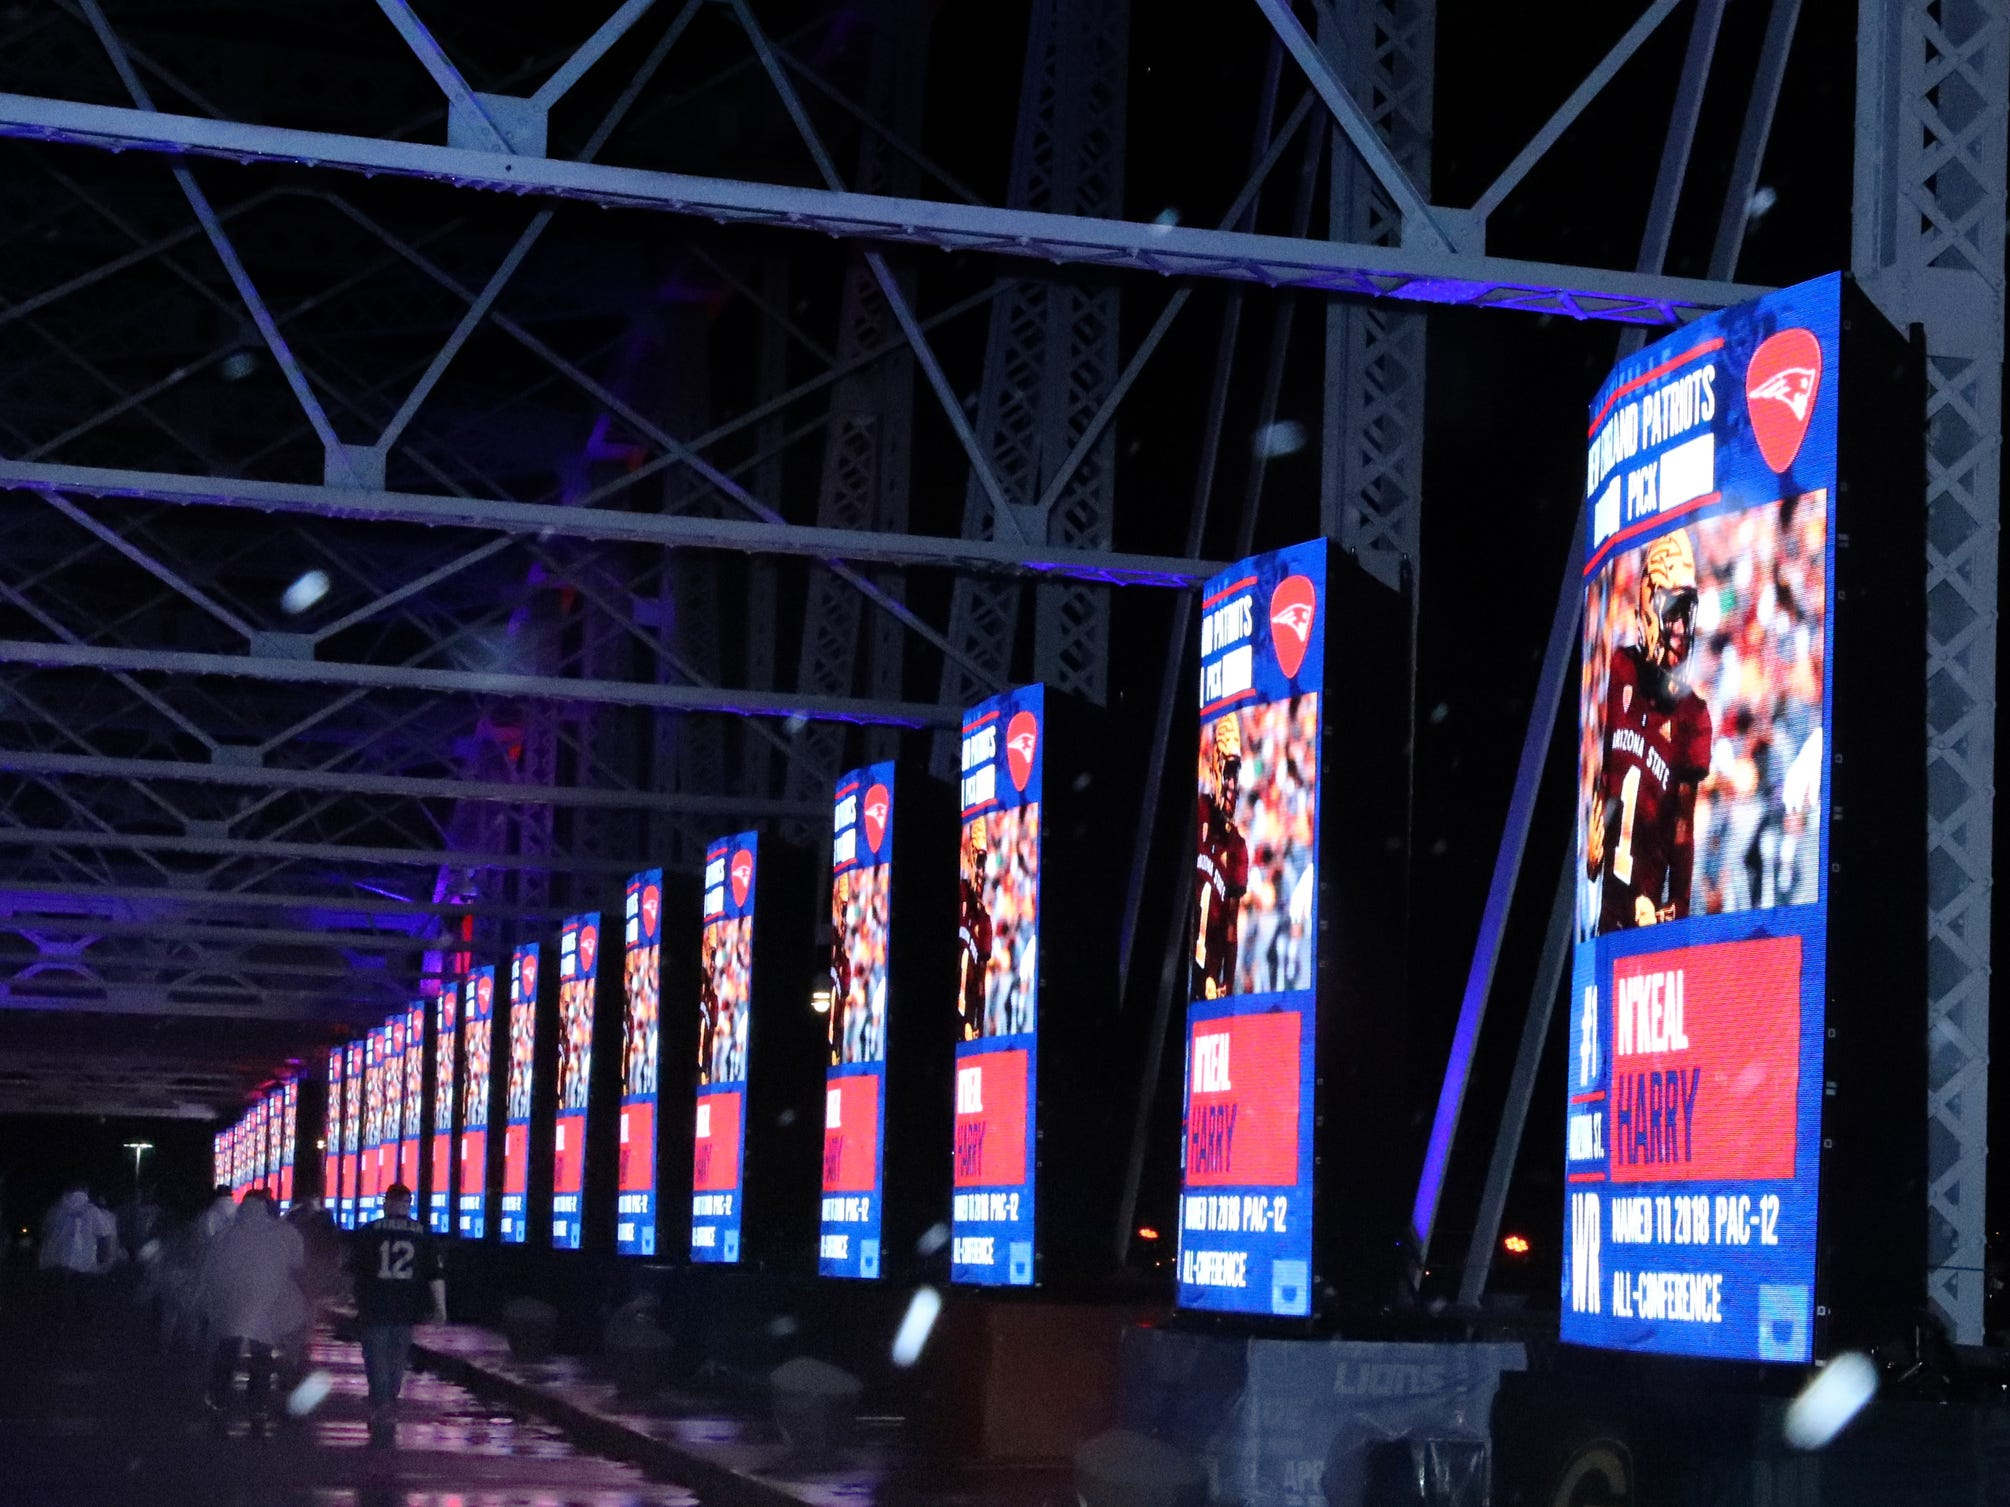 An image of N'Keal Harry pops up on screens along the  Seigenthaler Bridge, in Nashville, Tennessee, after he was selected as the last player in the first round of the NFL Draft on Thursday, April 25, 2019, in Nashville, Tennessee.